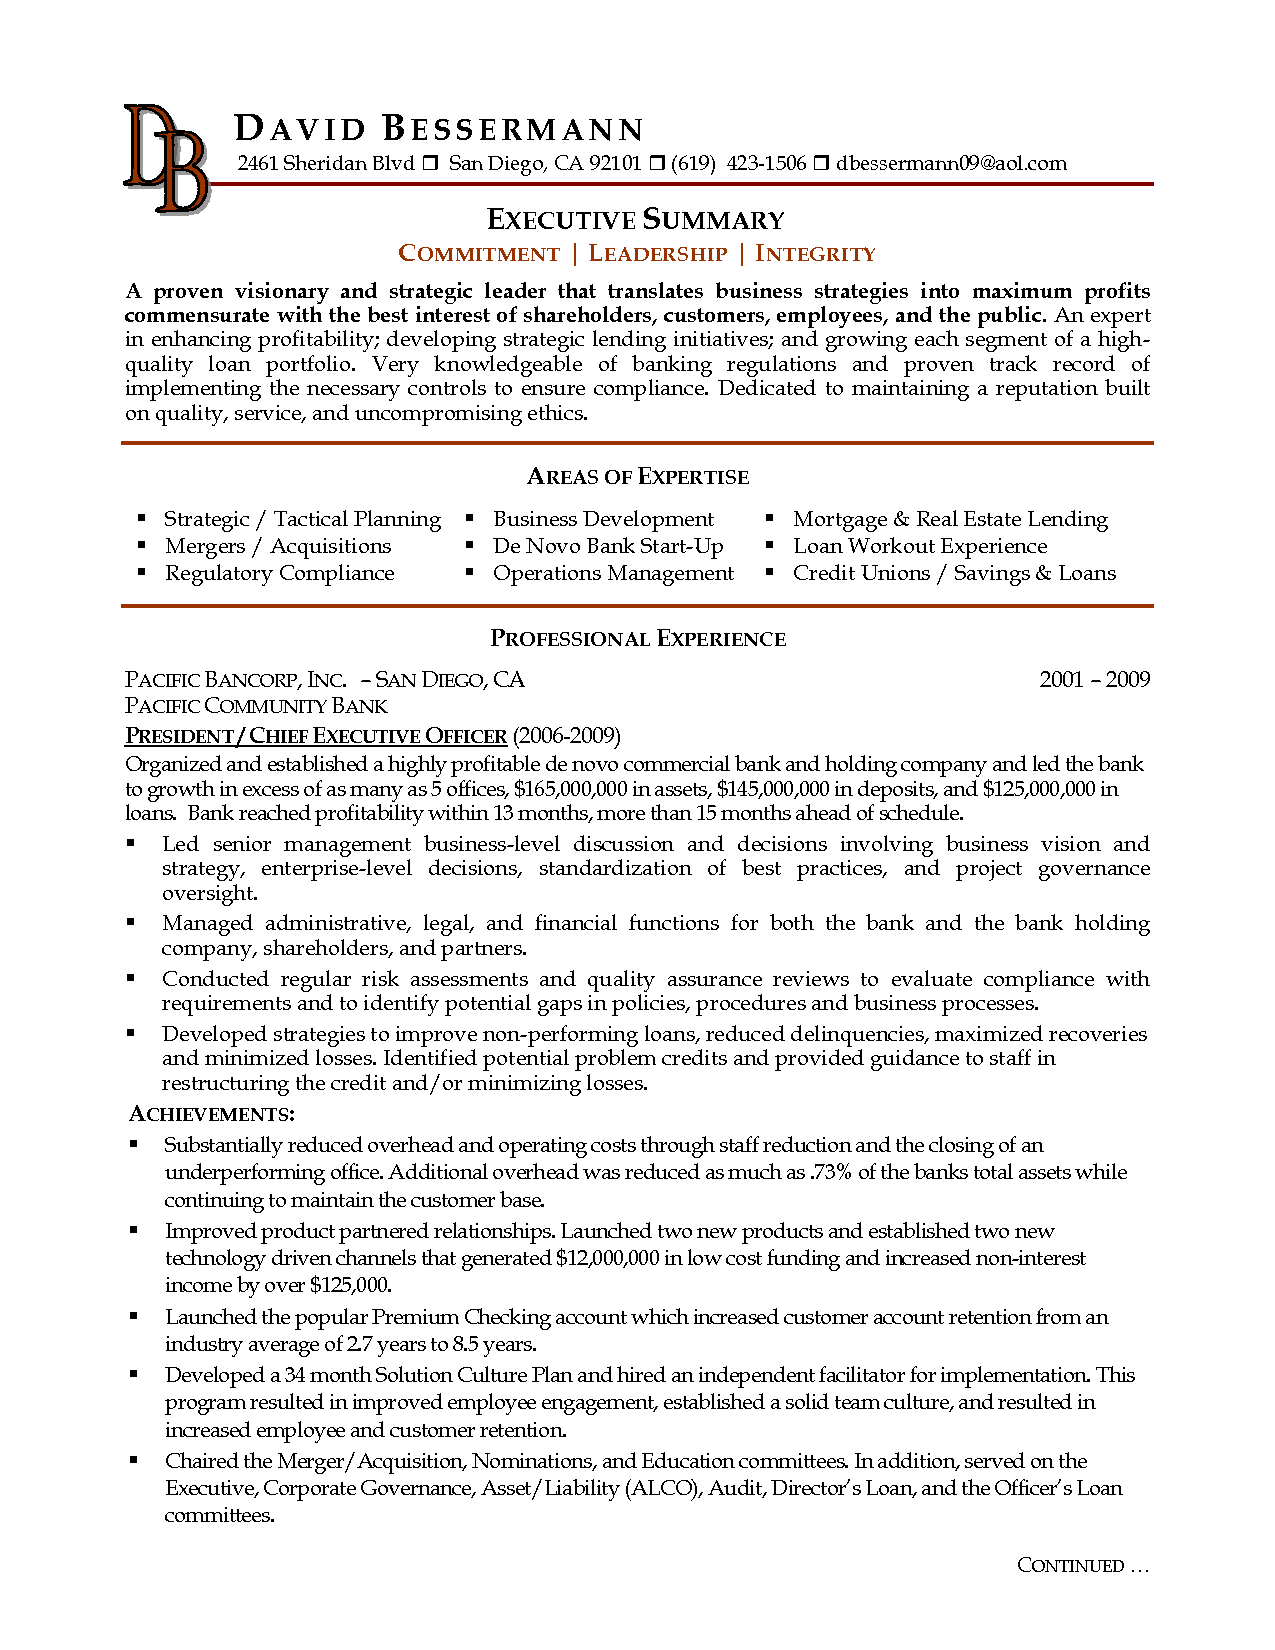 Professional Summary Resume New Resume Summary Examples Template Example For Students Professional Design Ideas